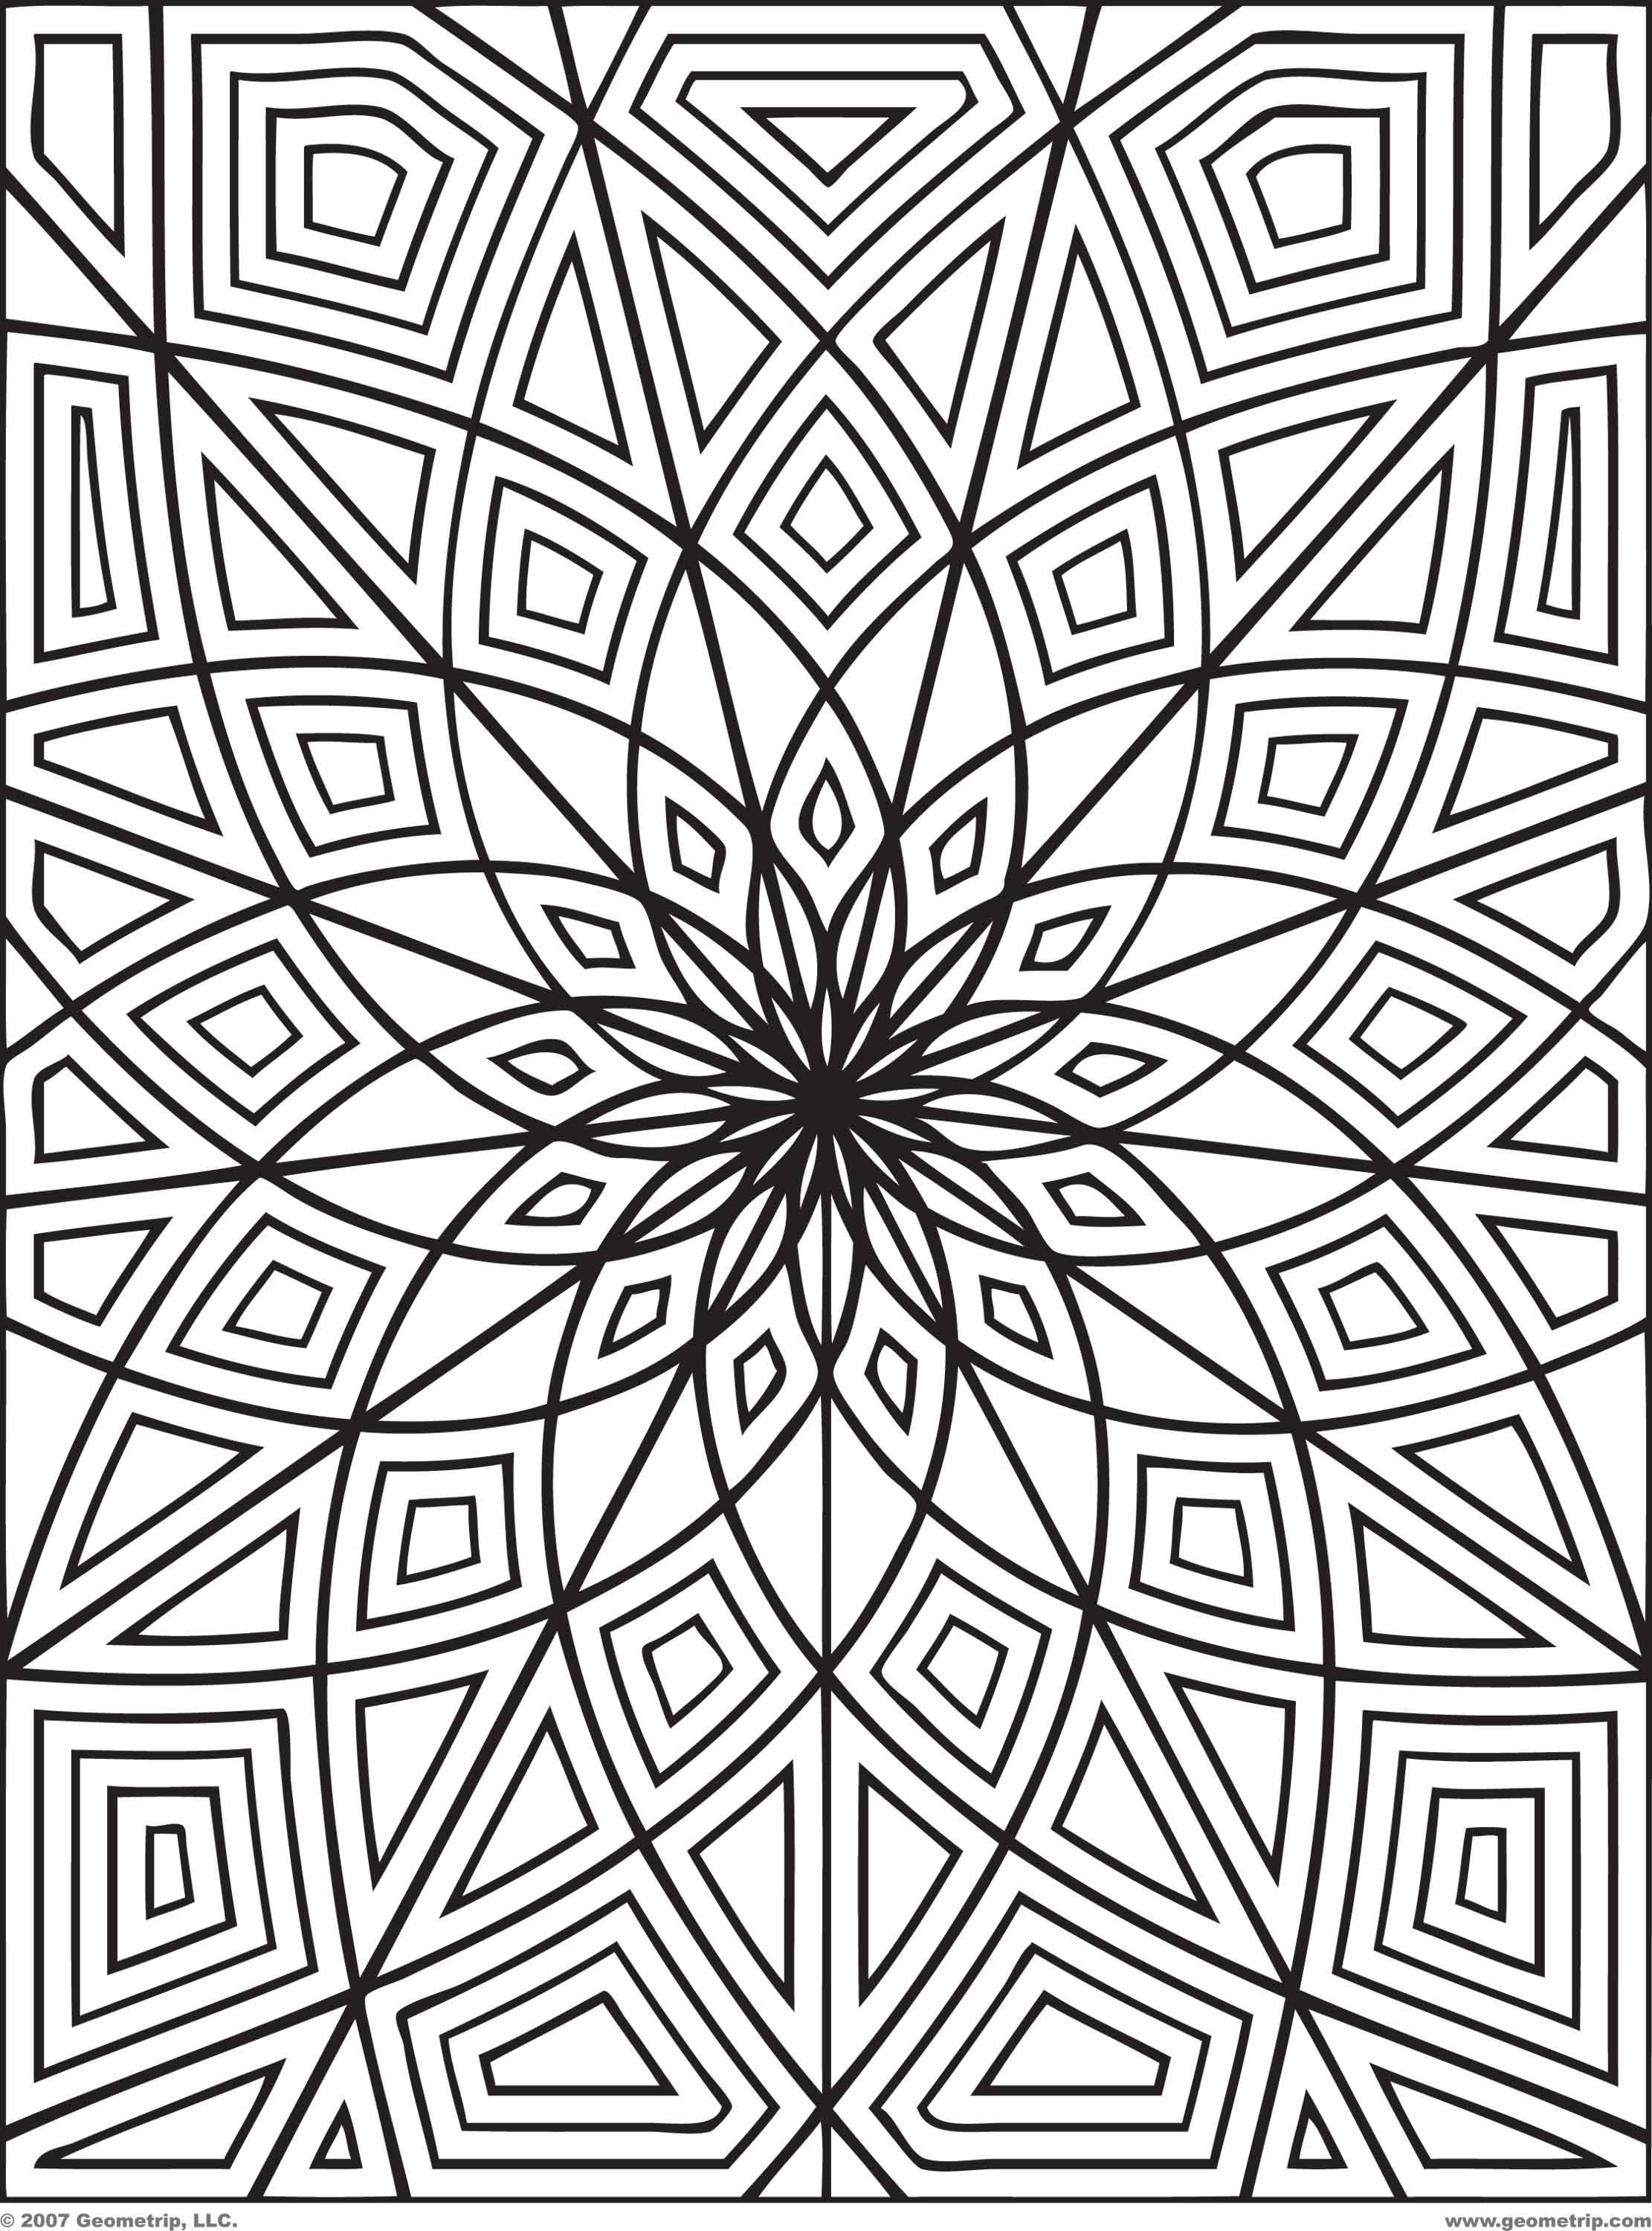 detailed coloring pages for adults colouring sheets and geometric colouring color in the geometric shapes - Coloring Pages Designs Shapes